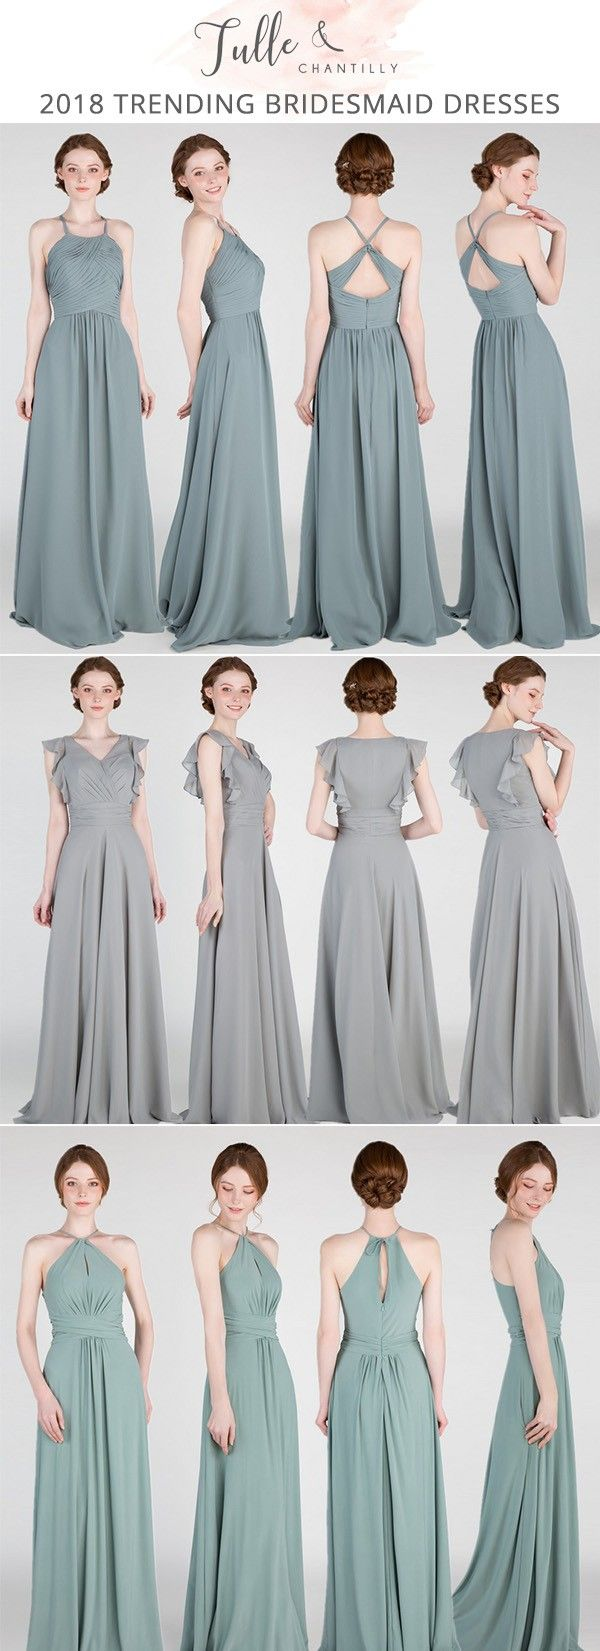 shades of green bridesmaid dresses for 2018 #bridalparty #bridesmaiddresses #greenerywedding #wedding